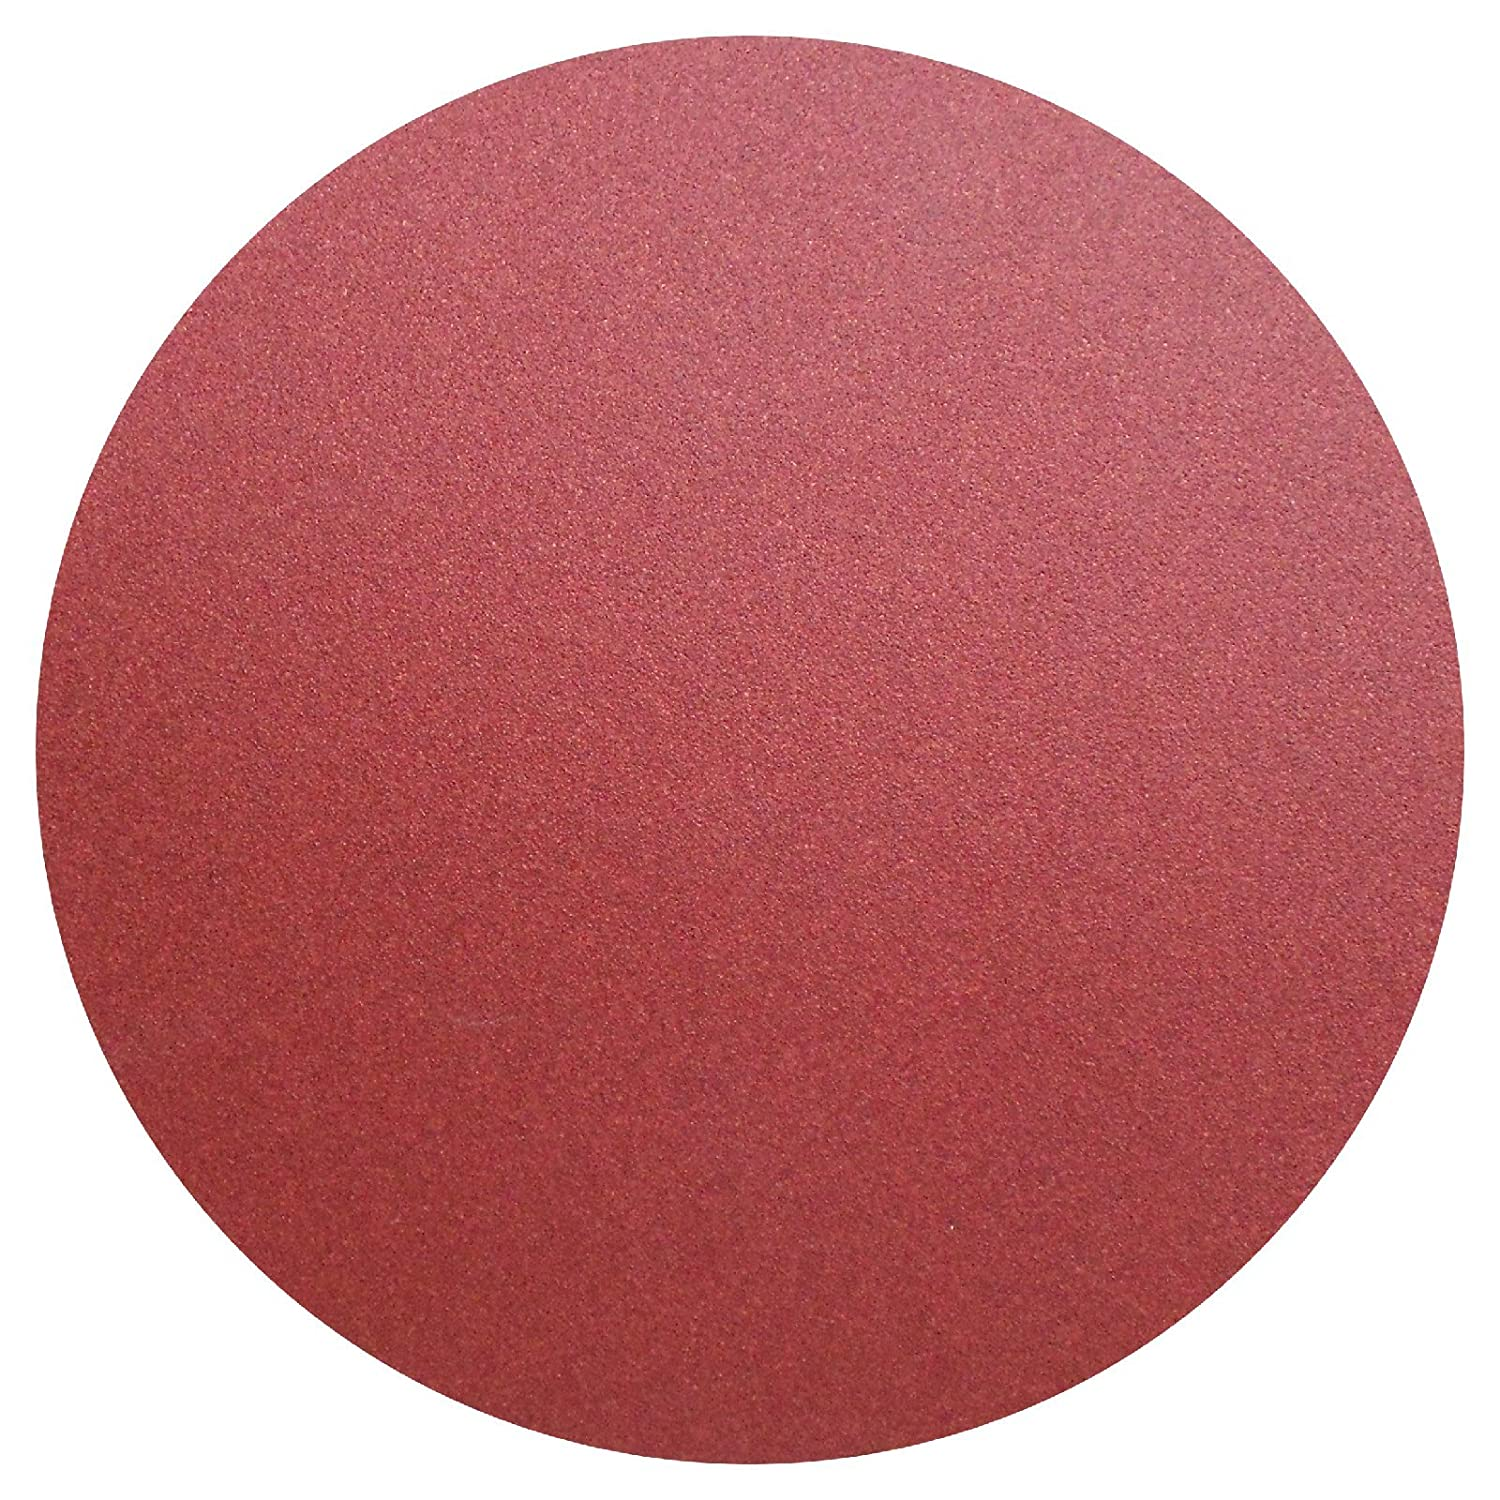 3/The P80/P120/Grit P180/P240/Grit P40 8 Loch 15 15/x Klingspor Grinding Wheel Diameter and Holes Available 115 mm GLS 4